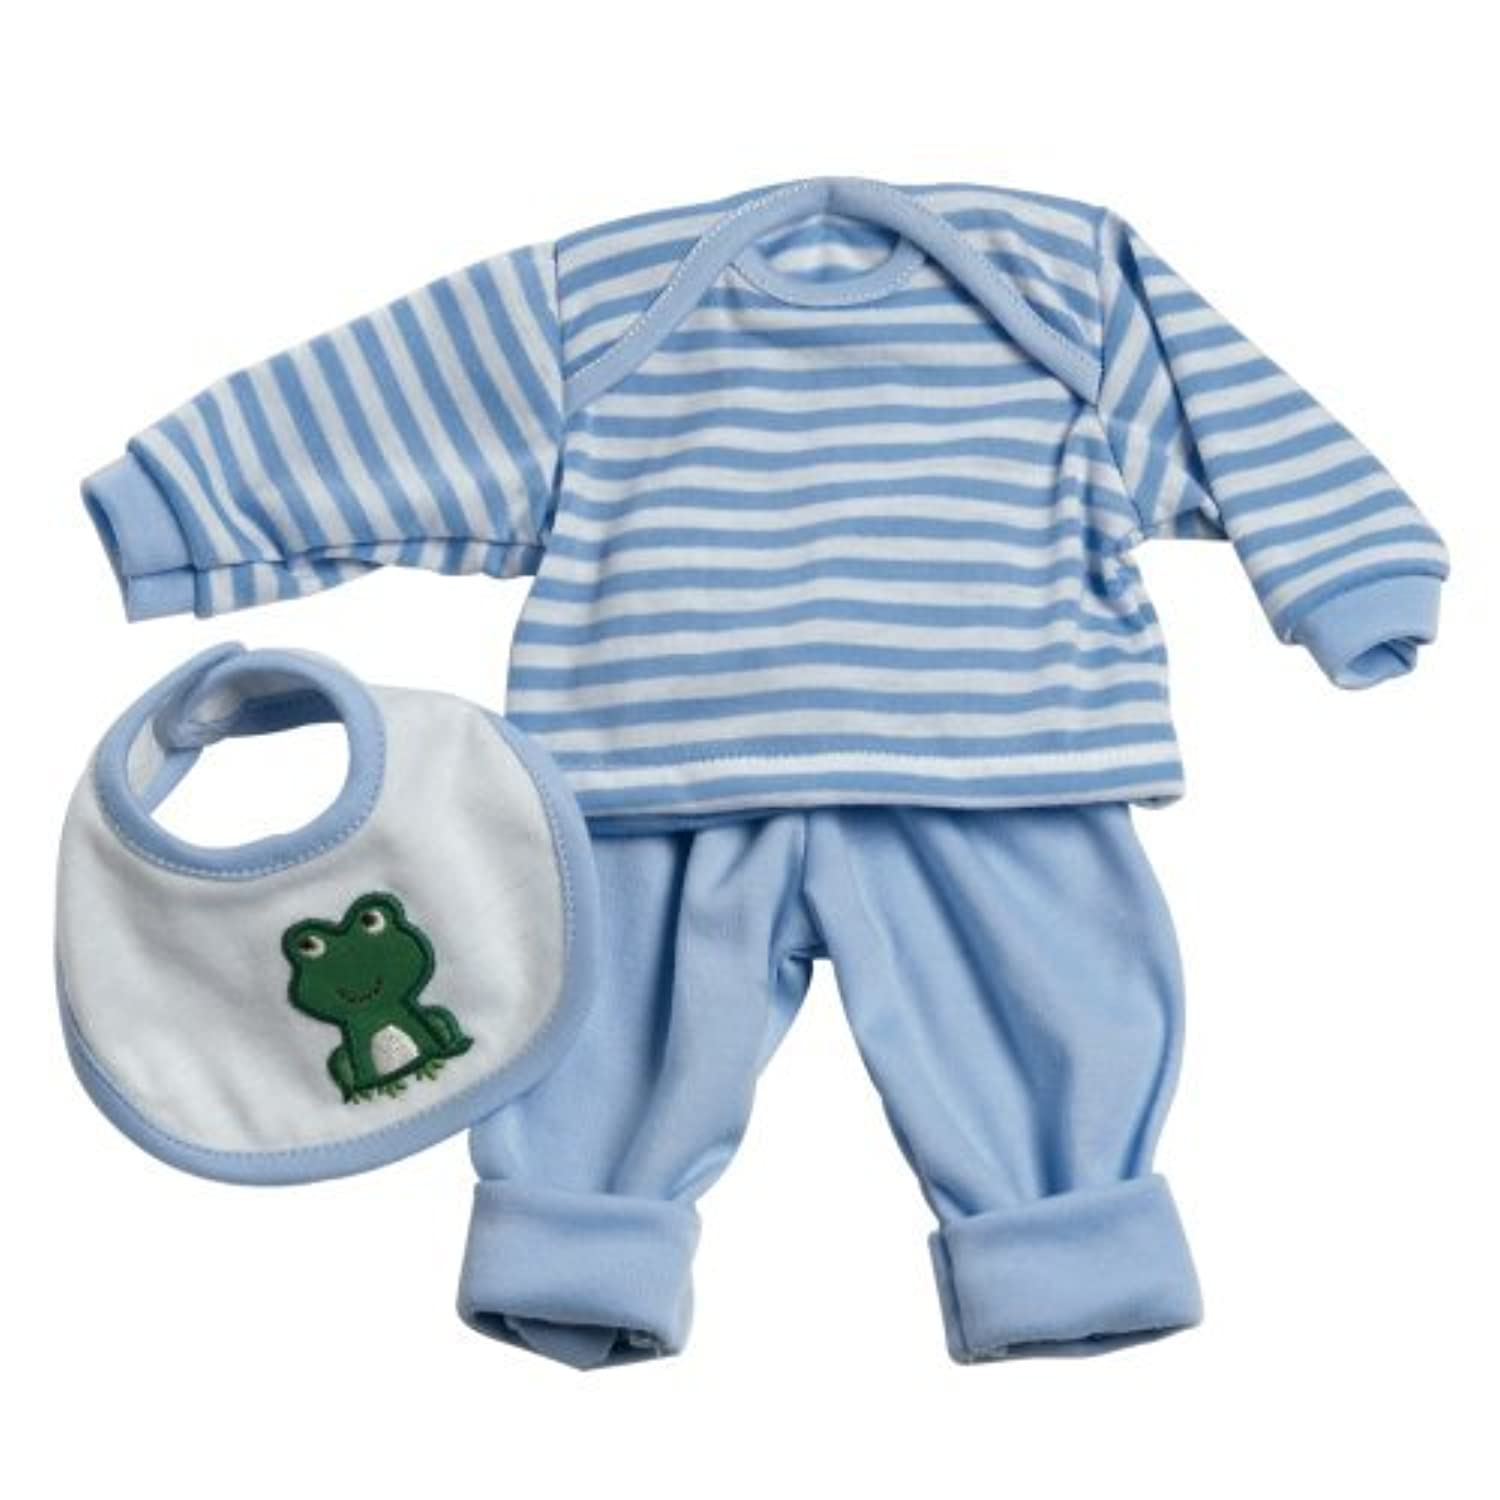 Adora 13inch Baby Doll Accessories 3 Pc. Play Set - Blue [並行輸入品]